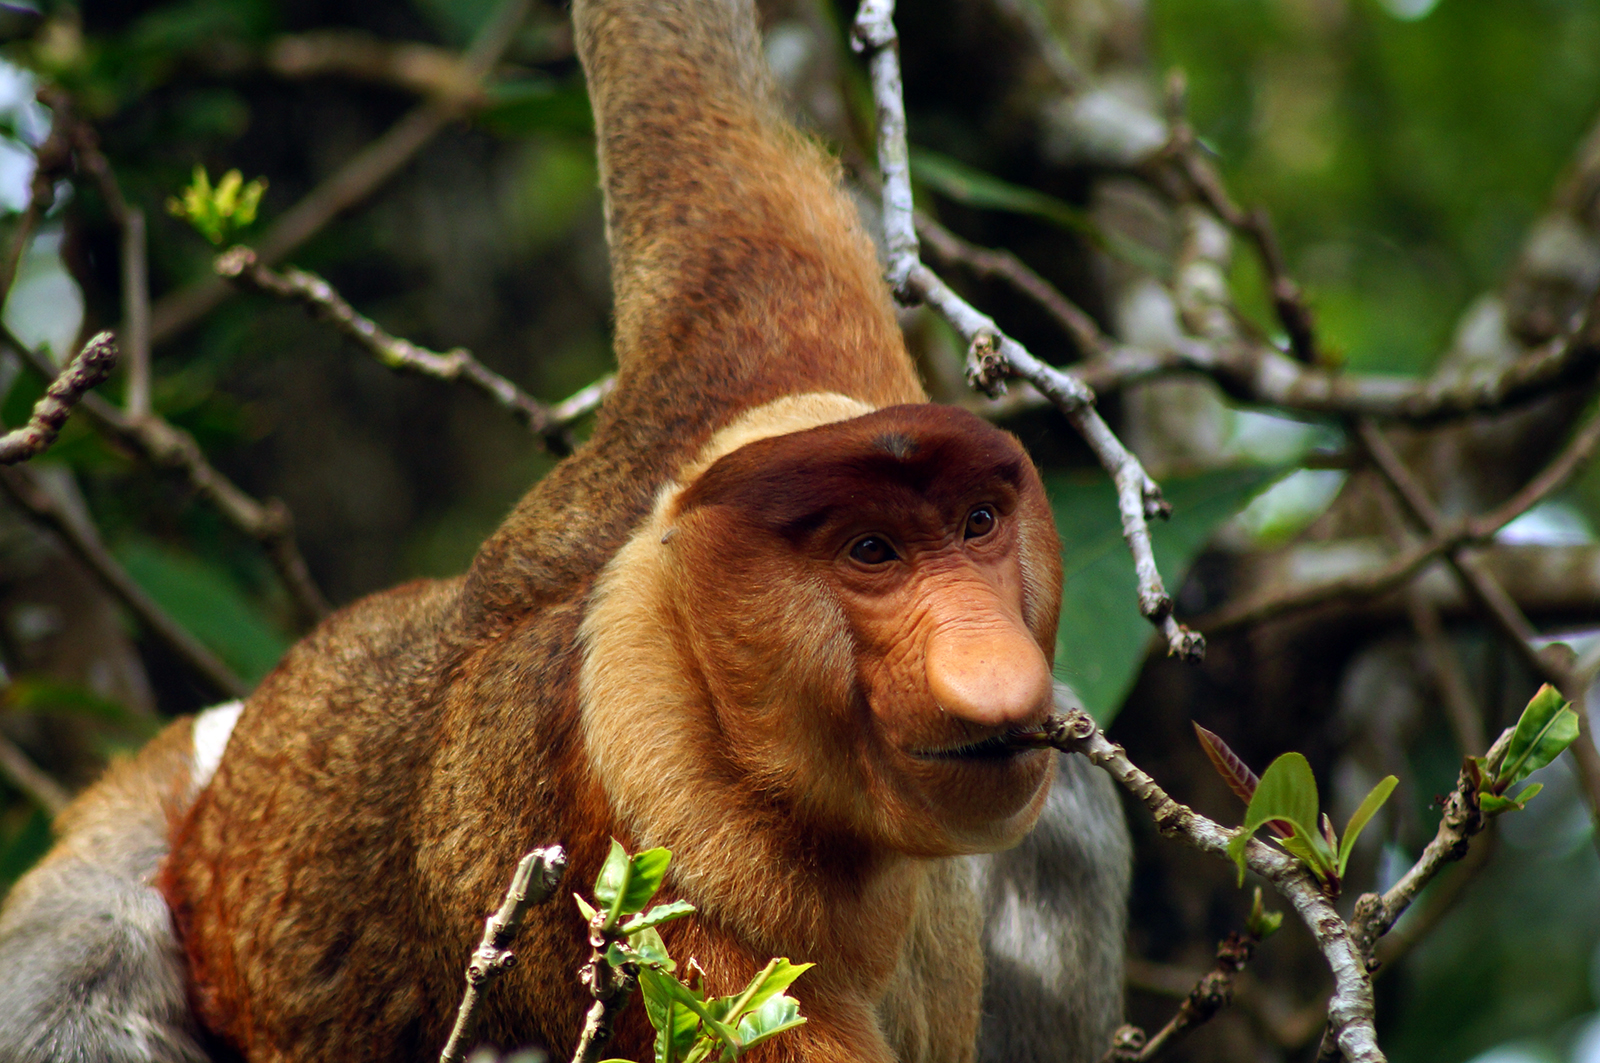 A male Proboscis monkey (Nasalis larvatus), photographed in Borneo, Malaysia in 2014.